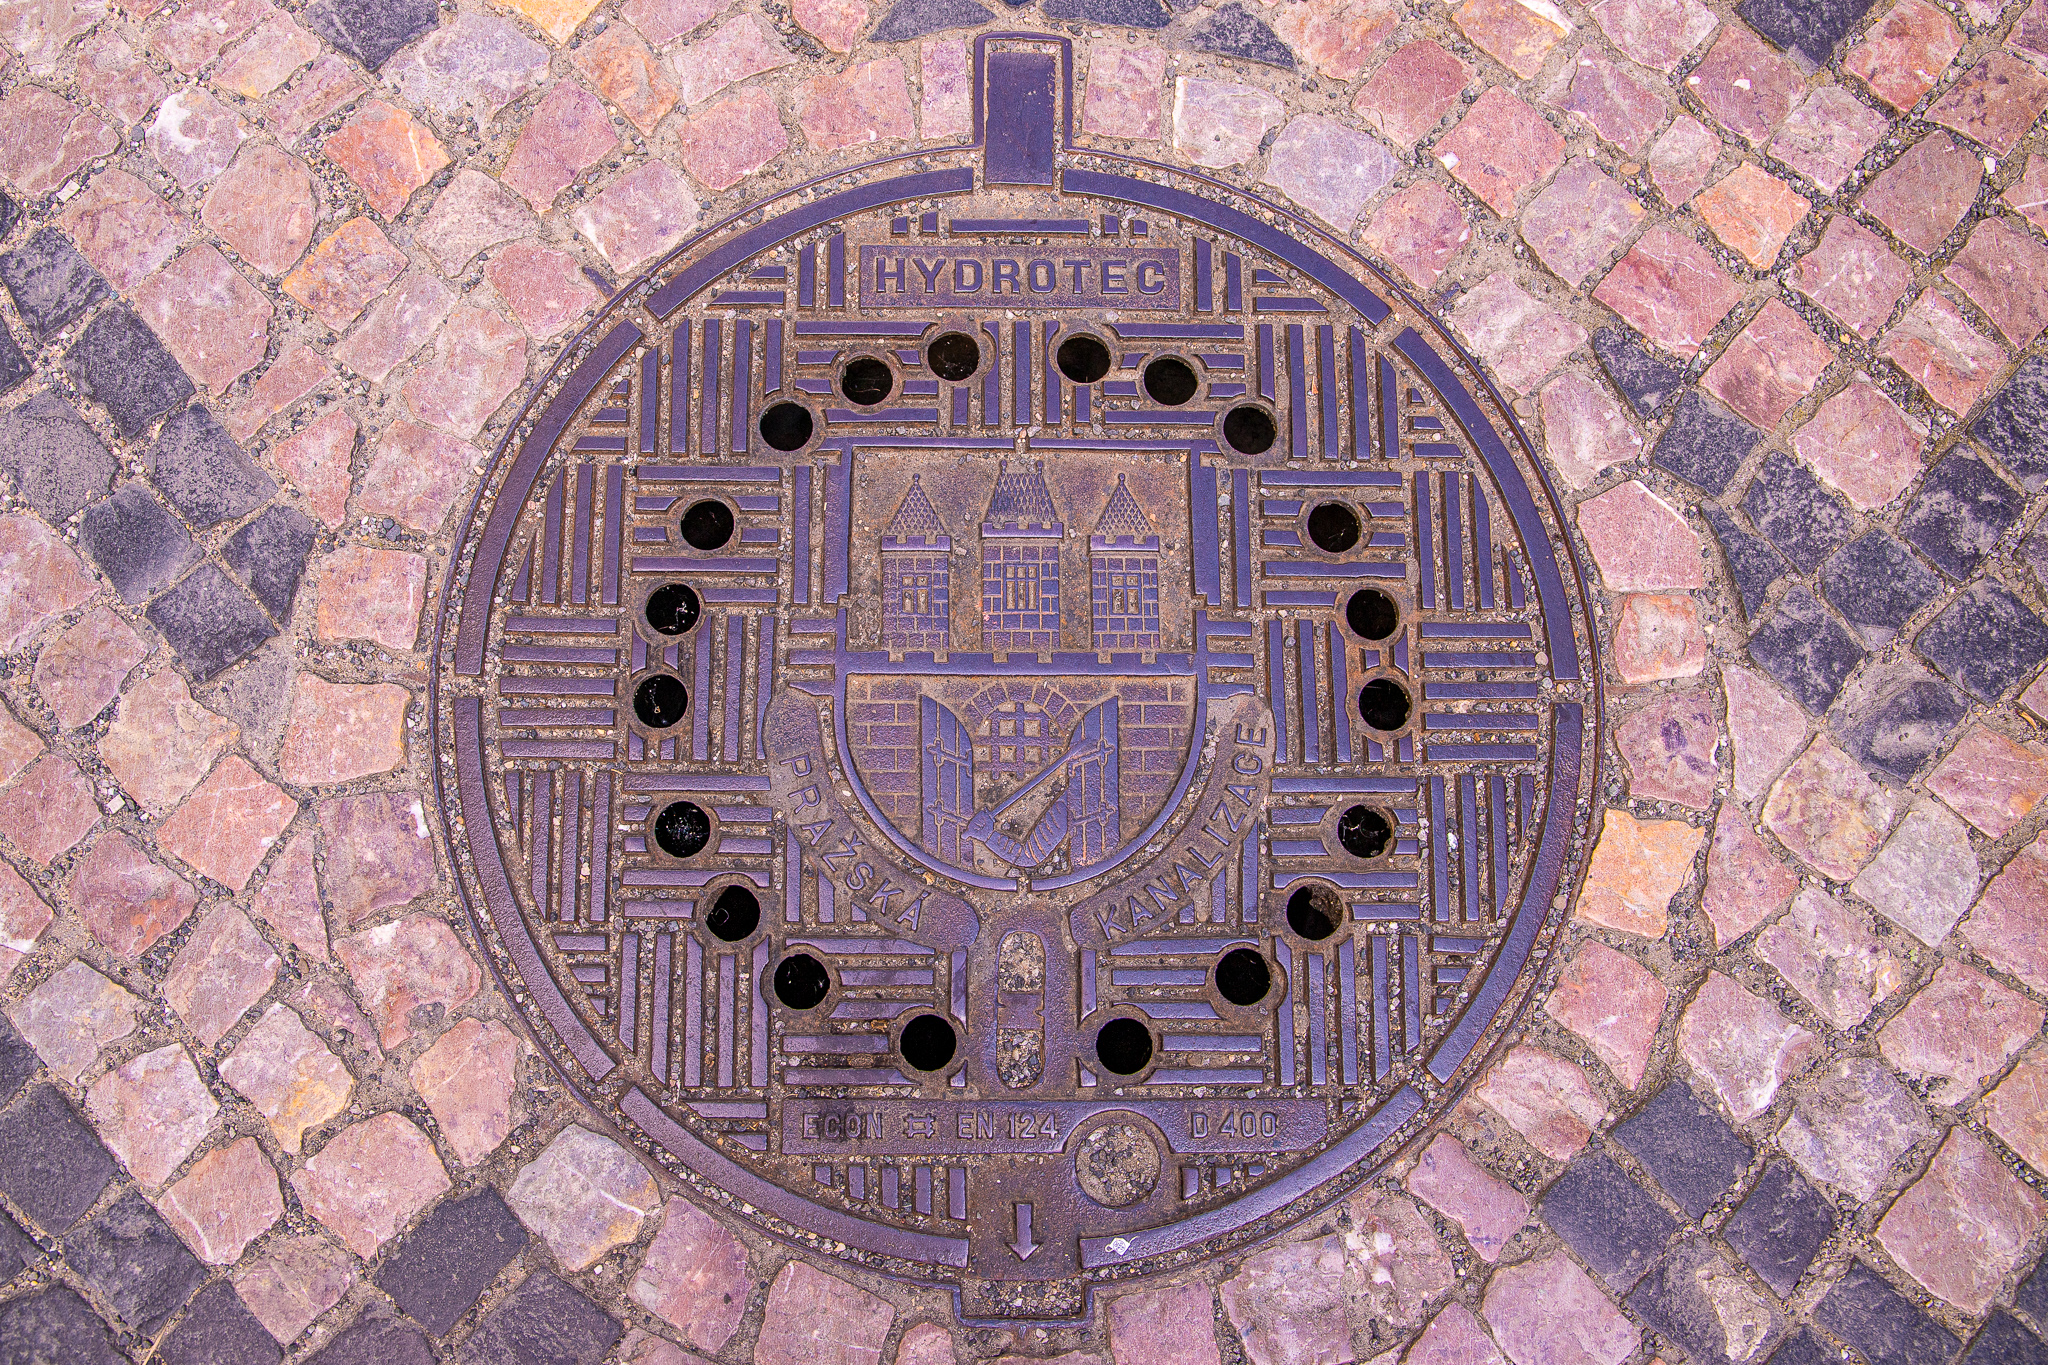 A city that makes badass manholes like this is one that's on top of its game